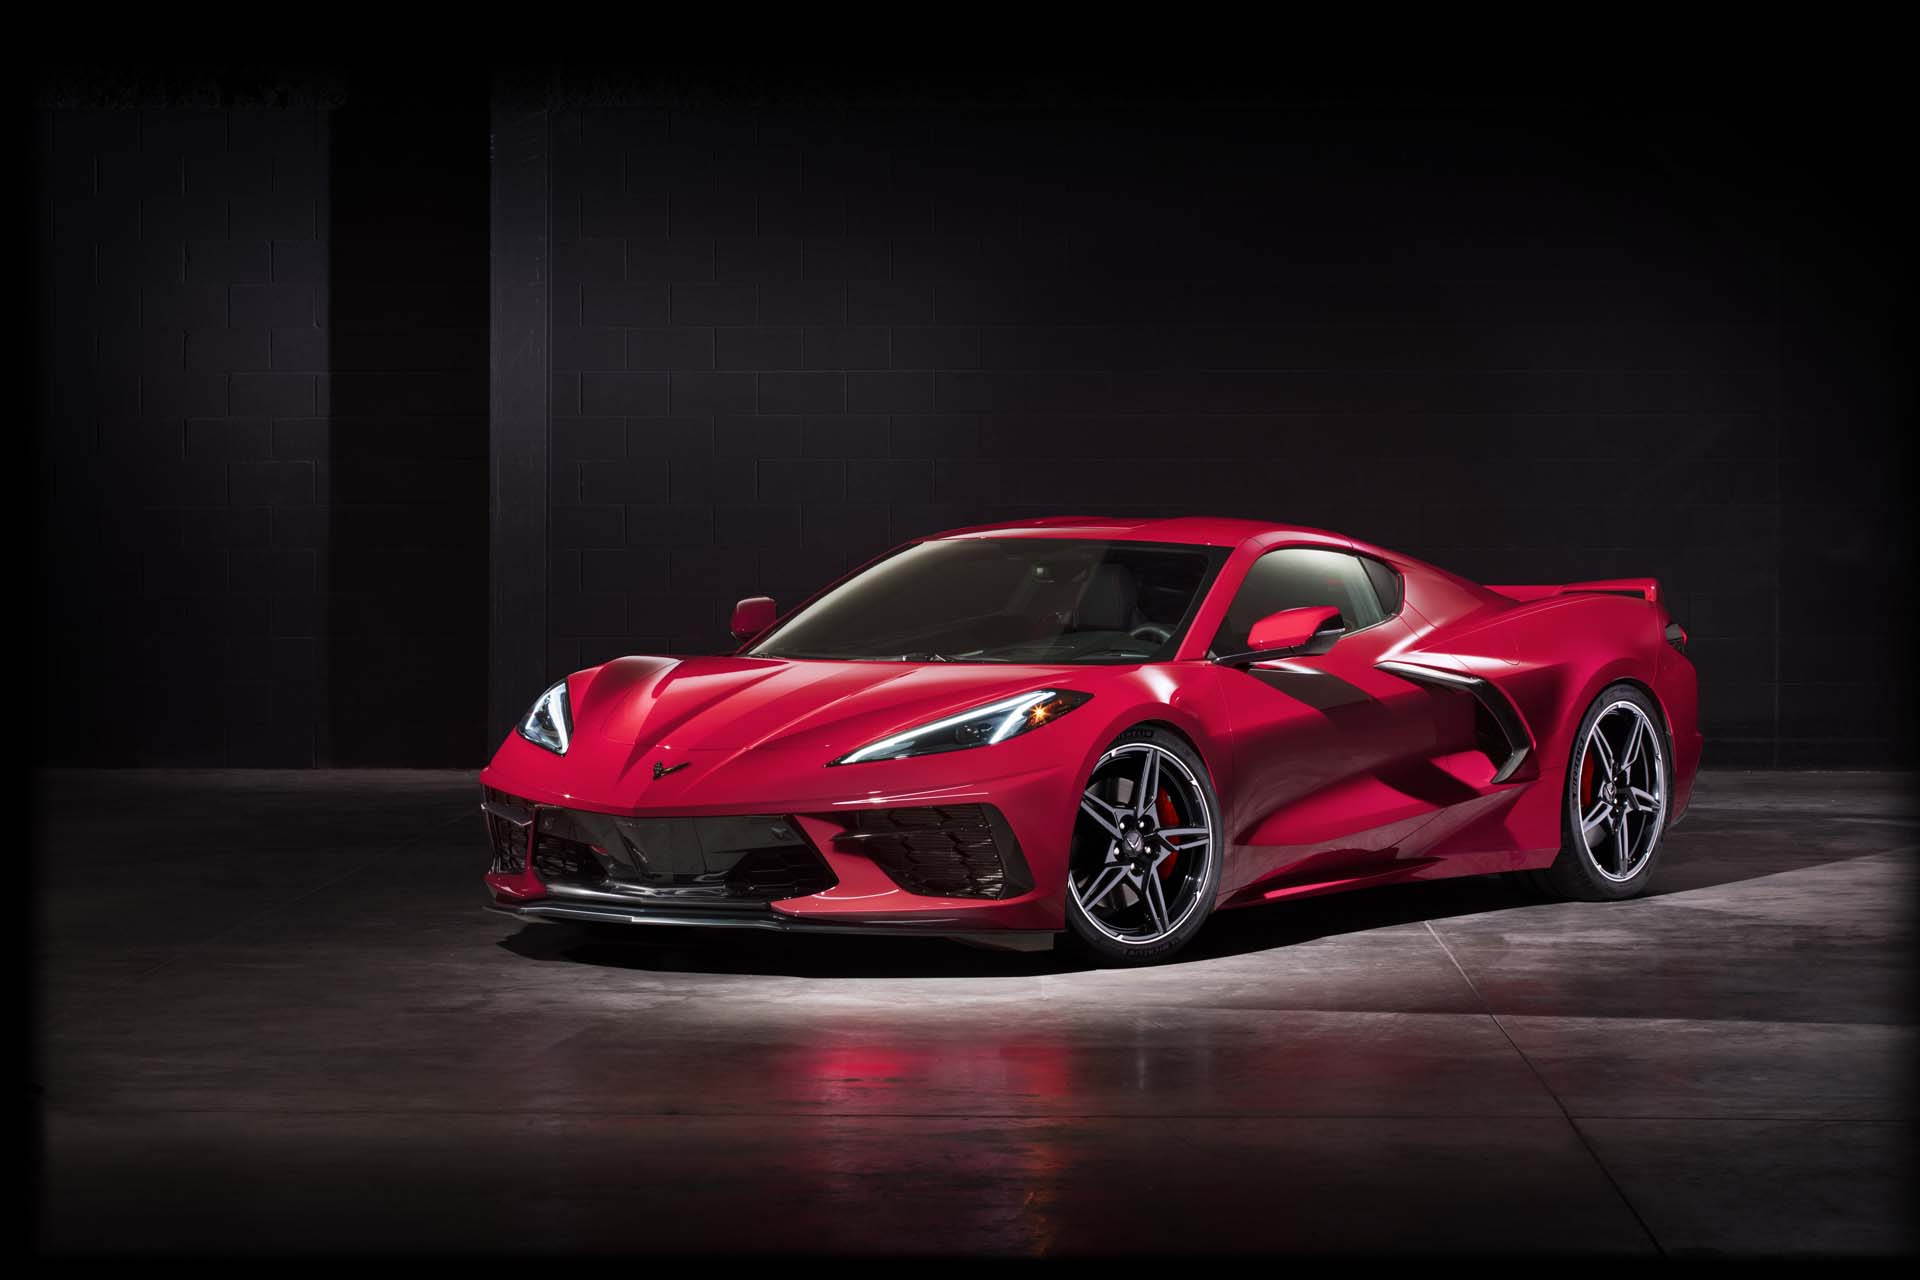 New Corvette Stingray >> 2020 Chevrolet Corvette Stingray Full Pricing Revealed